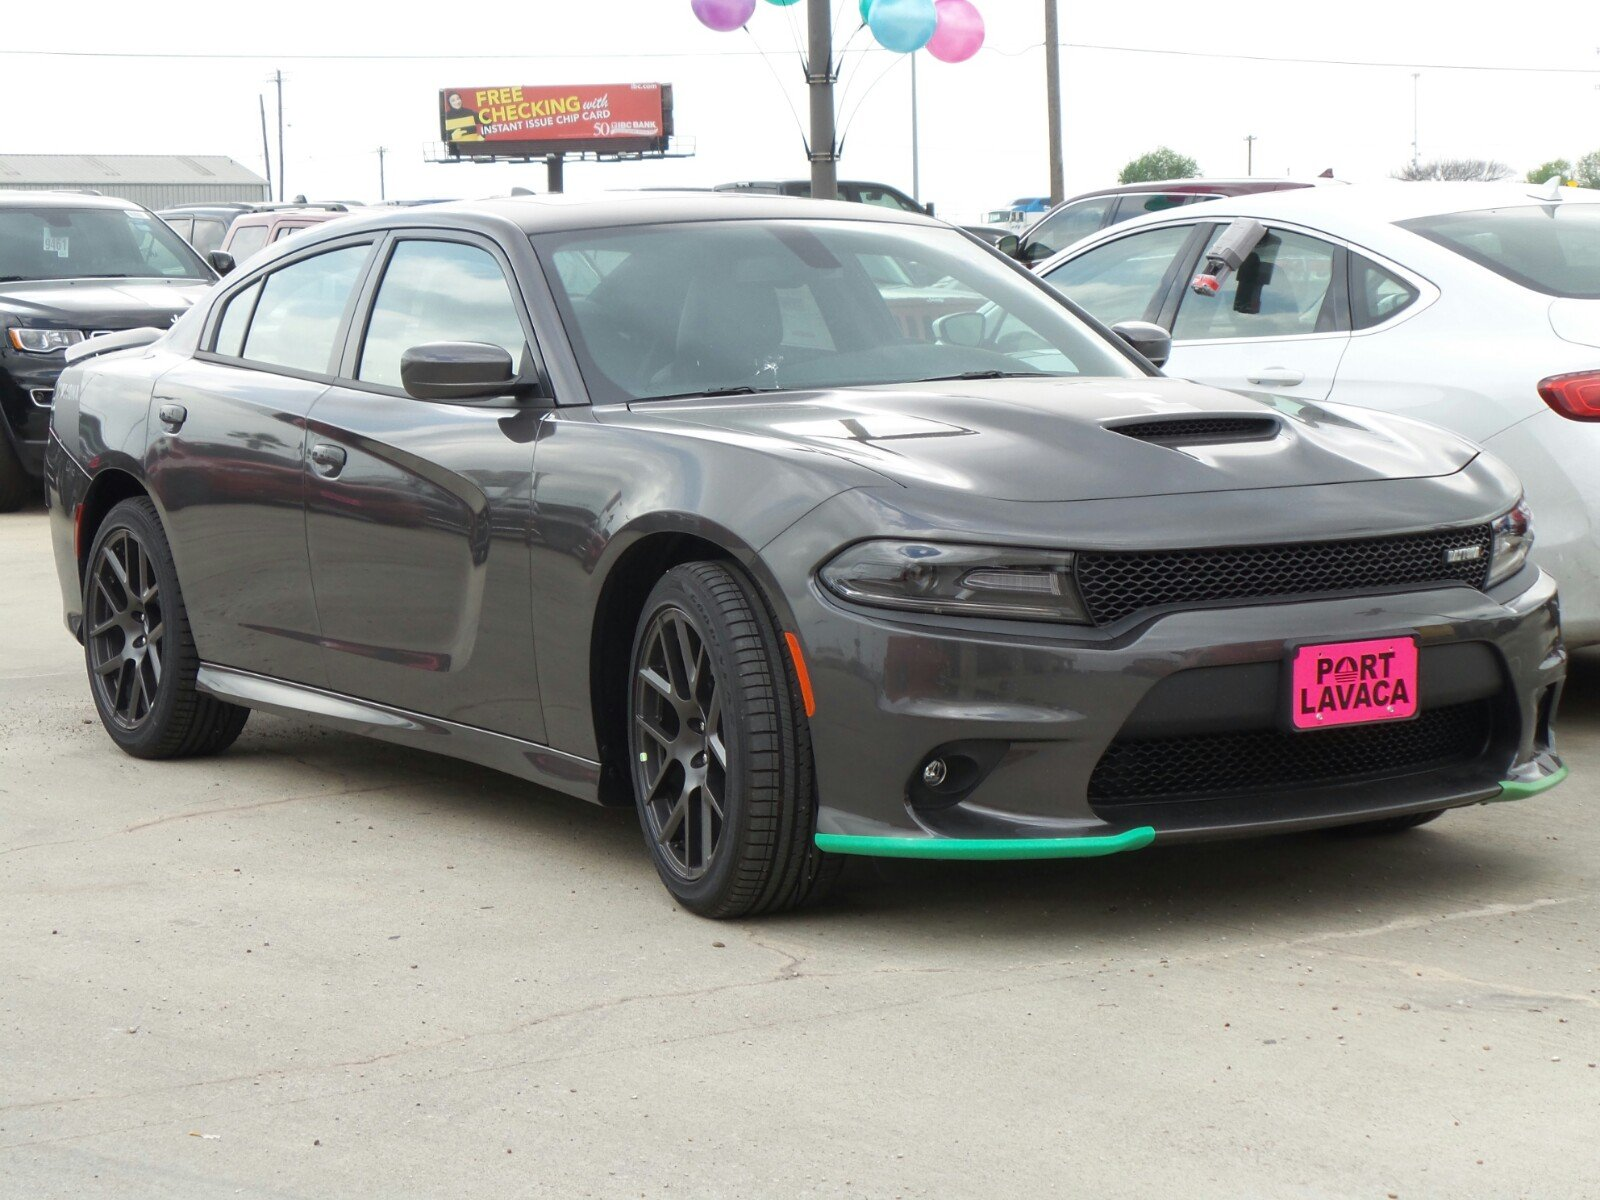 new 2017 dodge charger rt 4dr car in port lavaca h556815 port lavaca dodge chrysler jeep. Black Bedroom Furniture Sets. Home Design Ideas